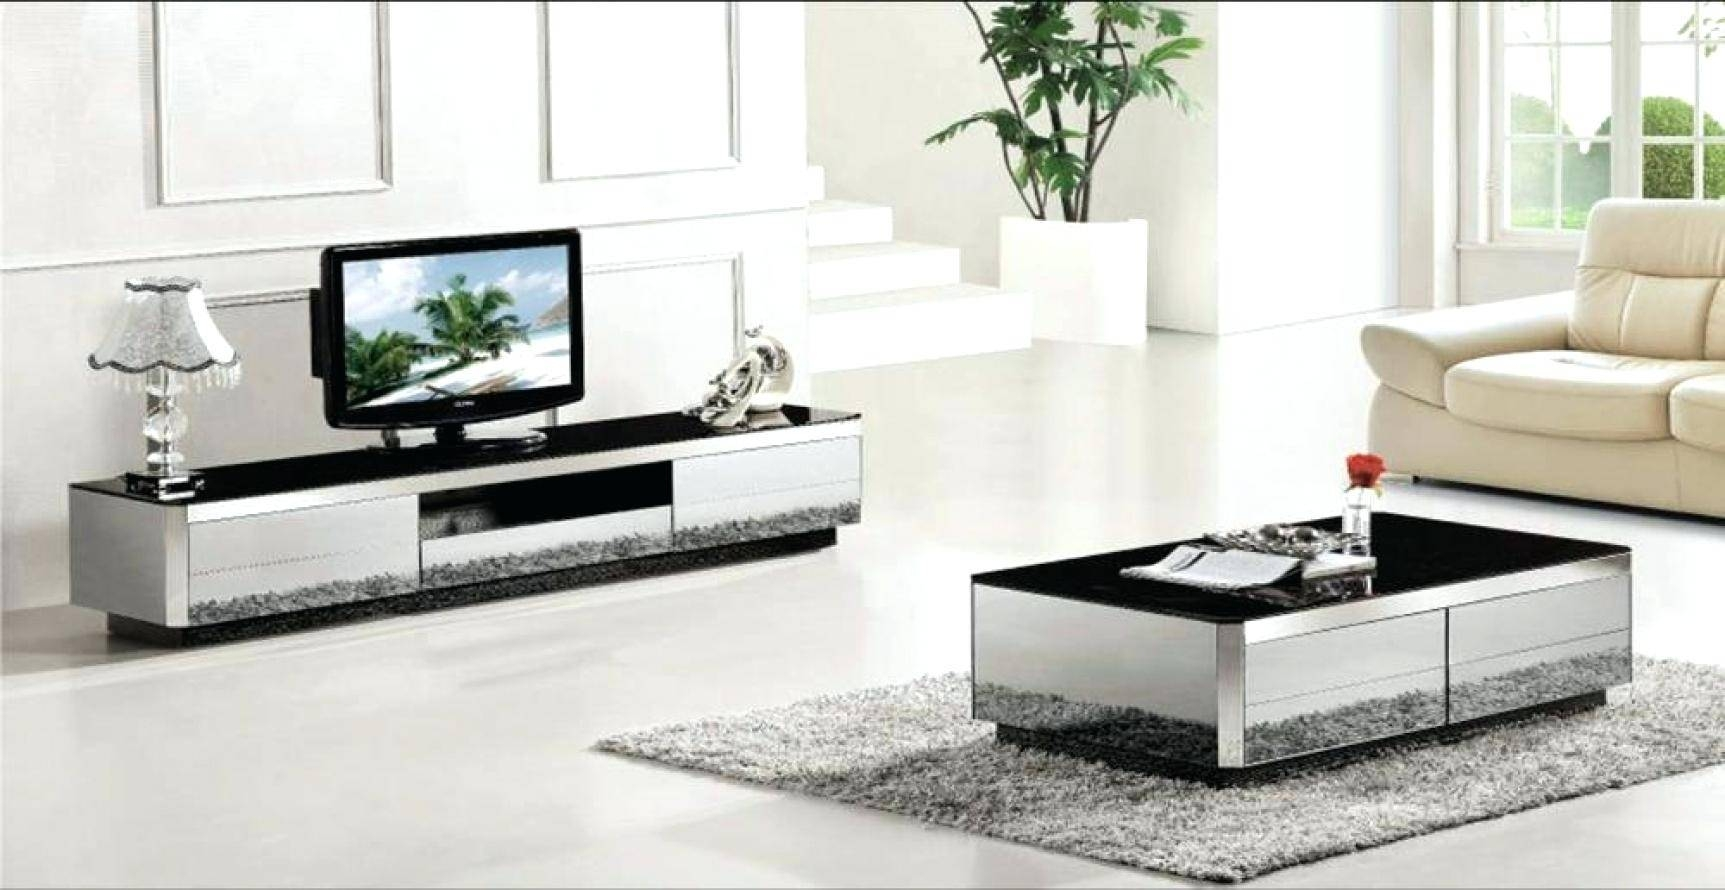 Coffee Table Sets With Matching Tv Stand | Coffee Tables Decoration Within Coffee Table And Tv Unit Sets (View 12 of 30)